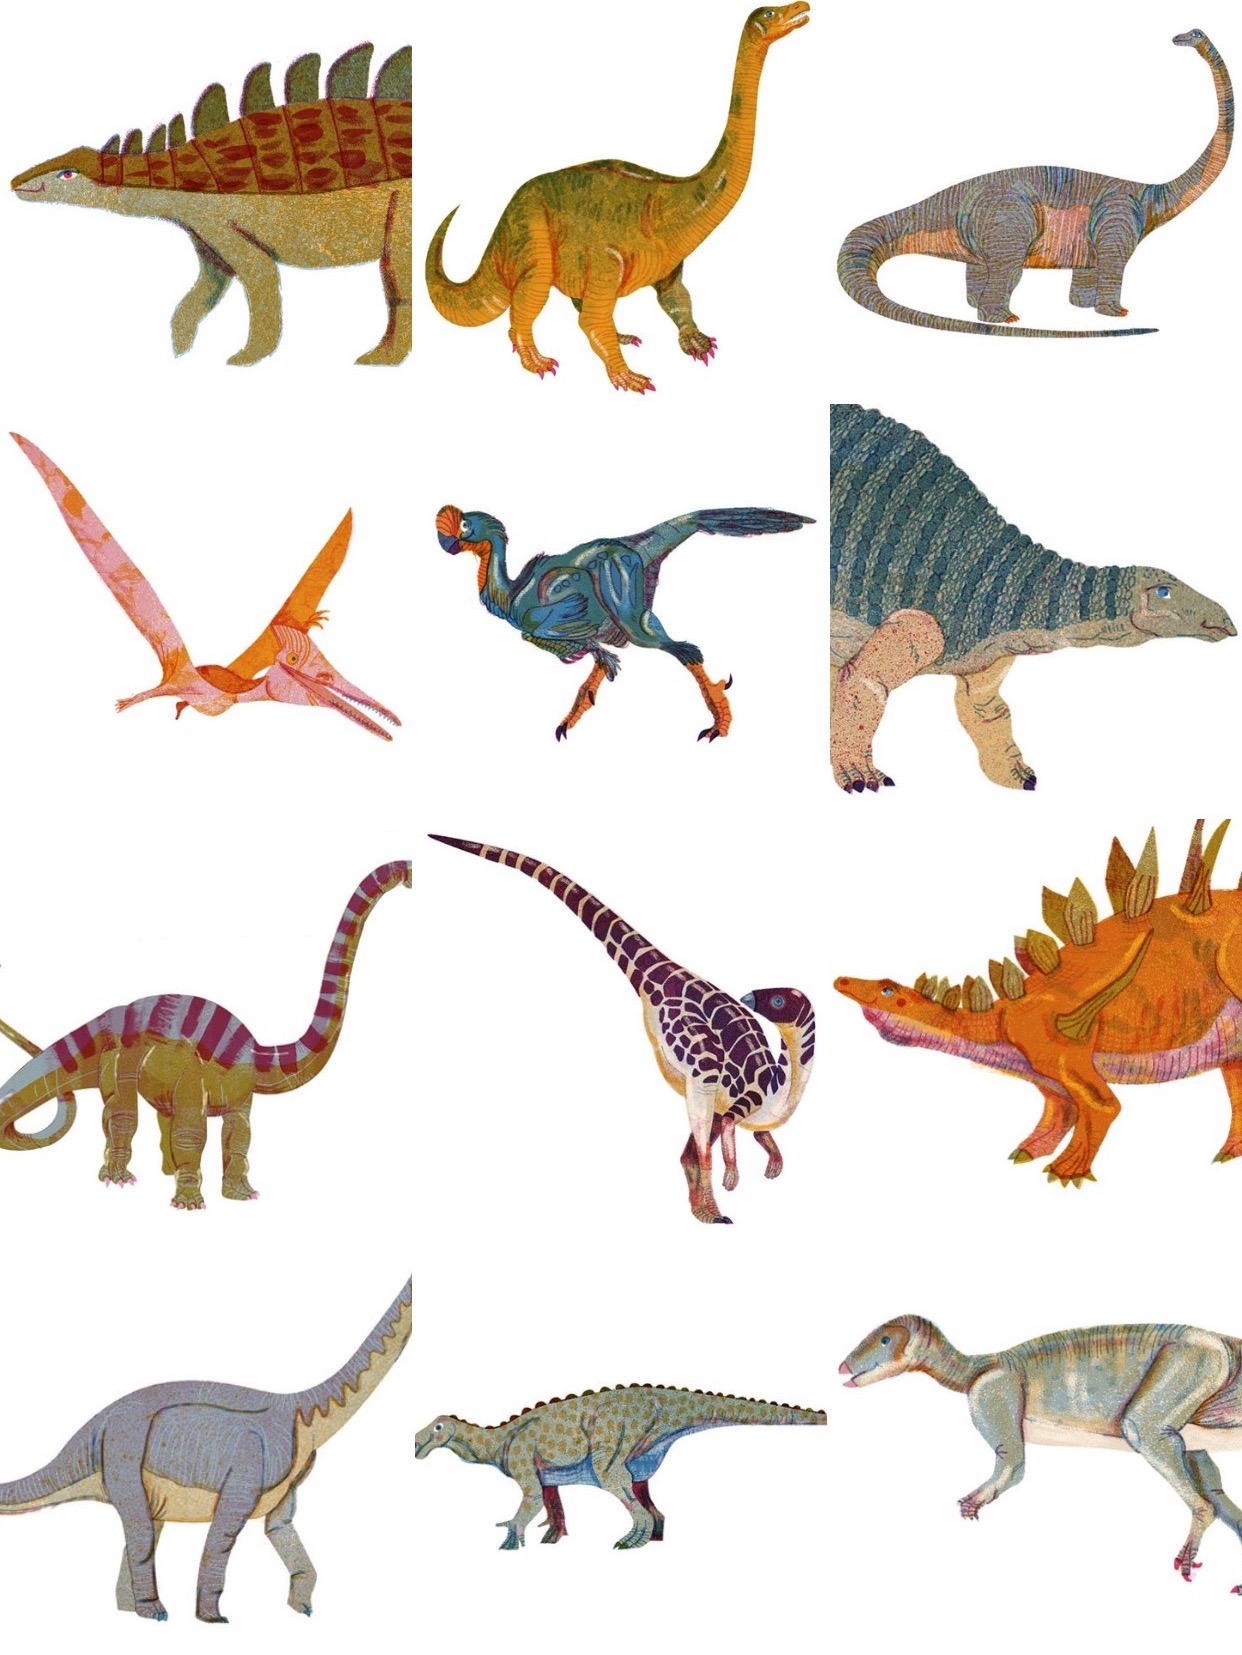 d98ff4a9fc6 ... This A-Z Dinosaurs series by Barbara Dziadosz is TOPS. Click over to  her Instagram to learn how to communicate with your five year-old niece or  nephew.